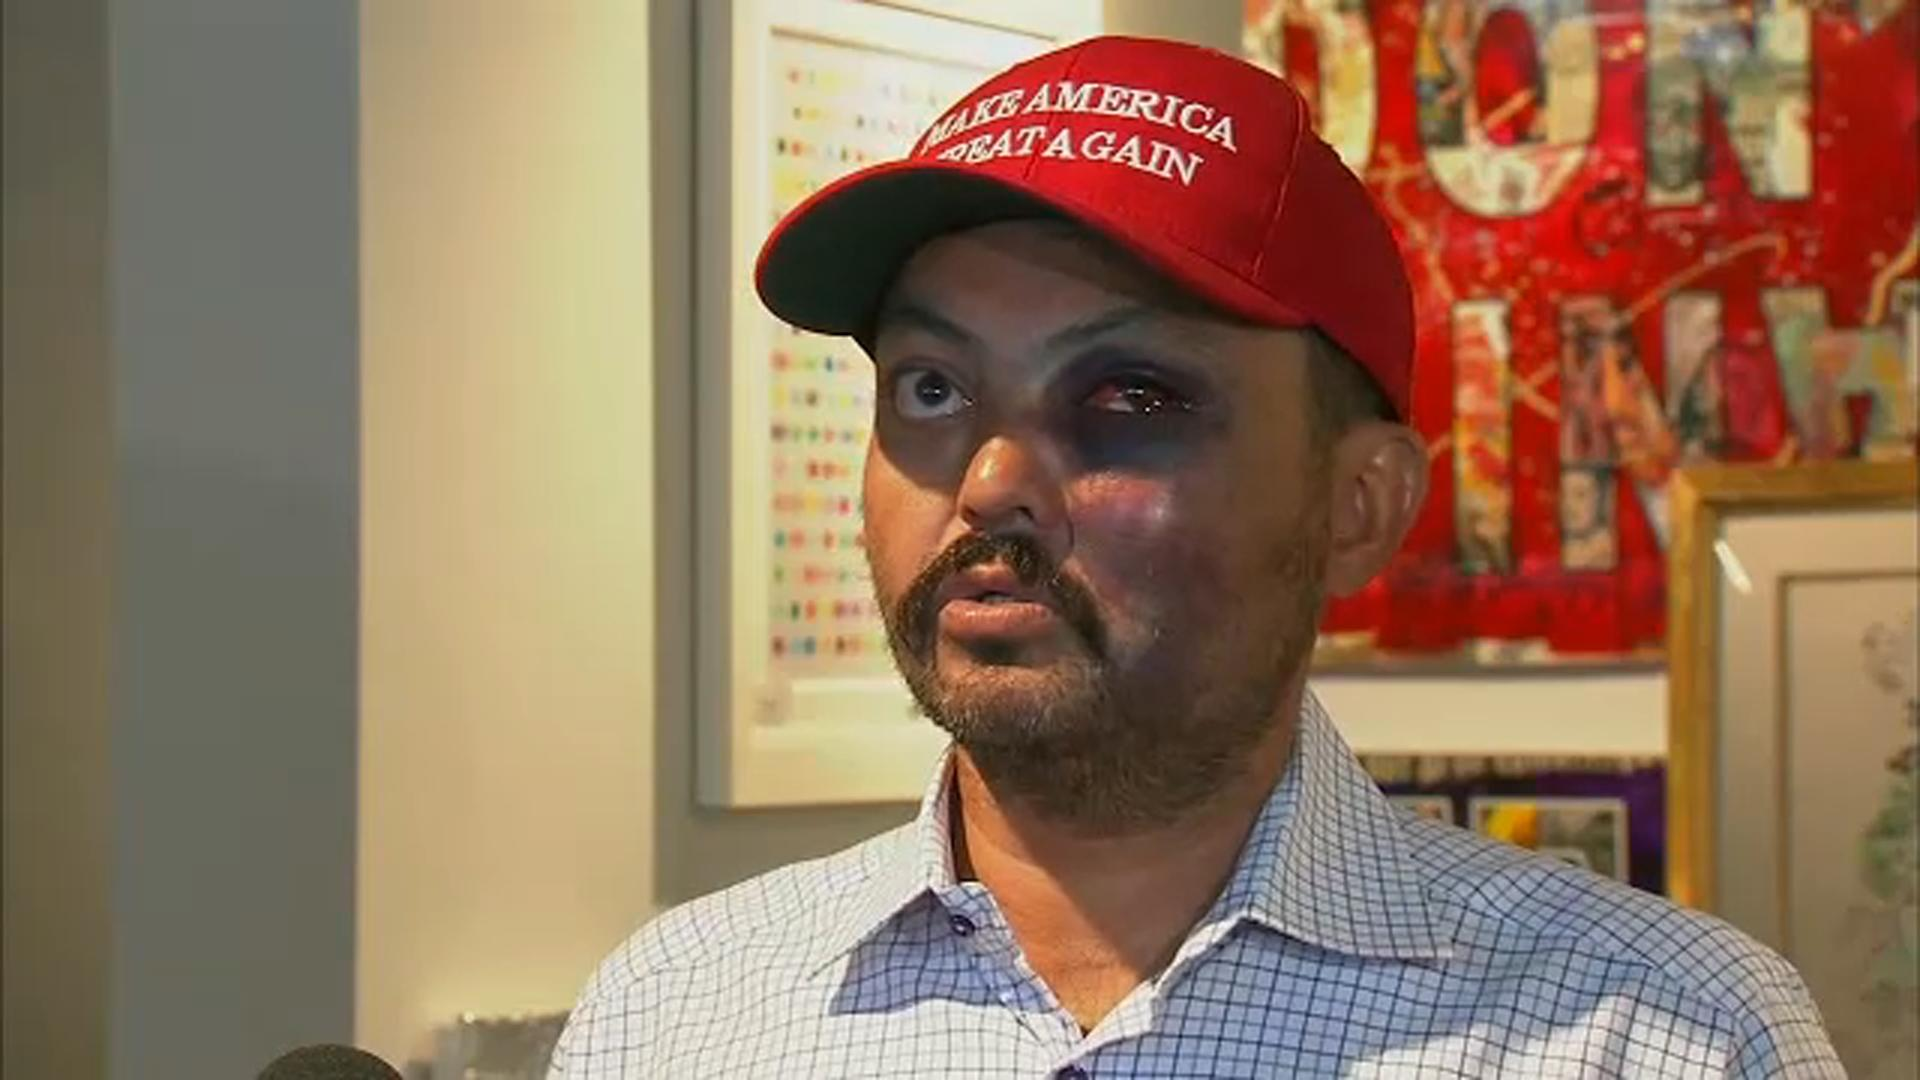 0486a4134c166 Man says he was attacked for wearing 'Make America Great Again' hat